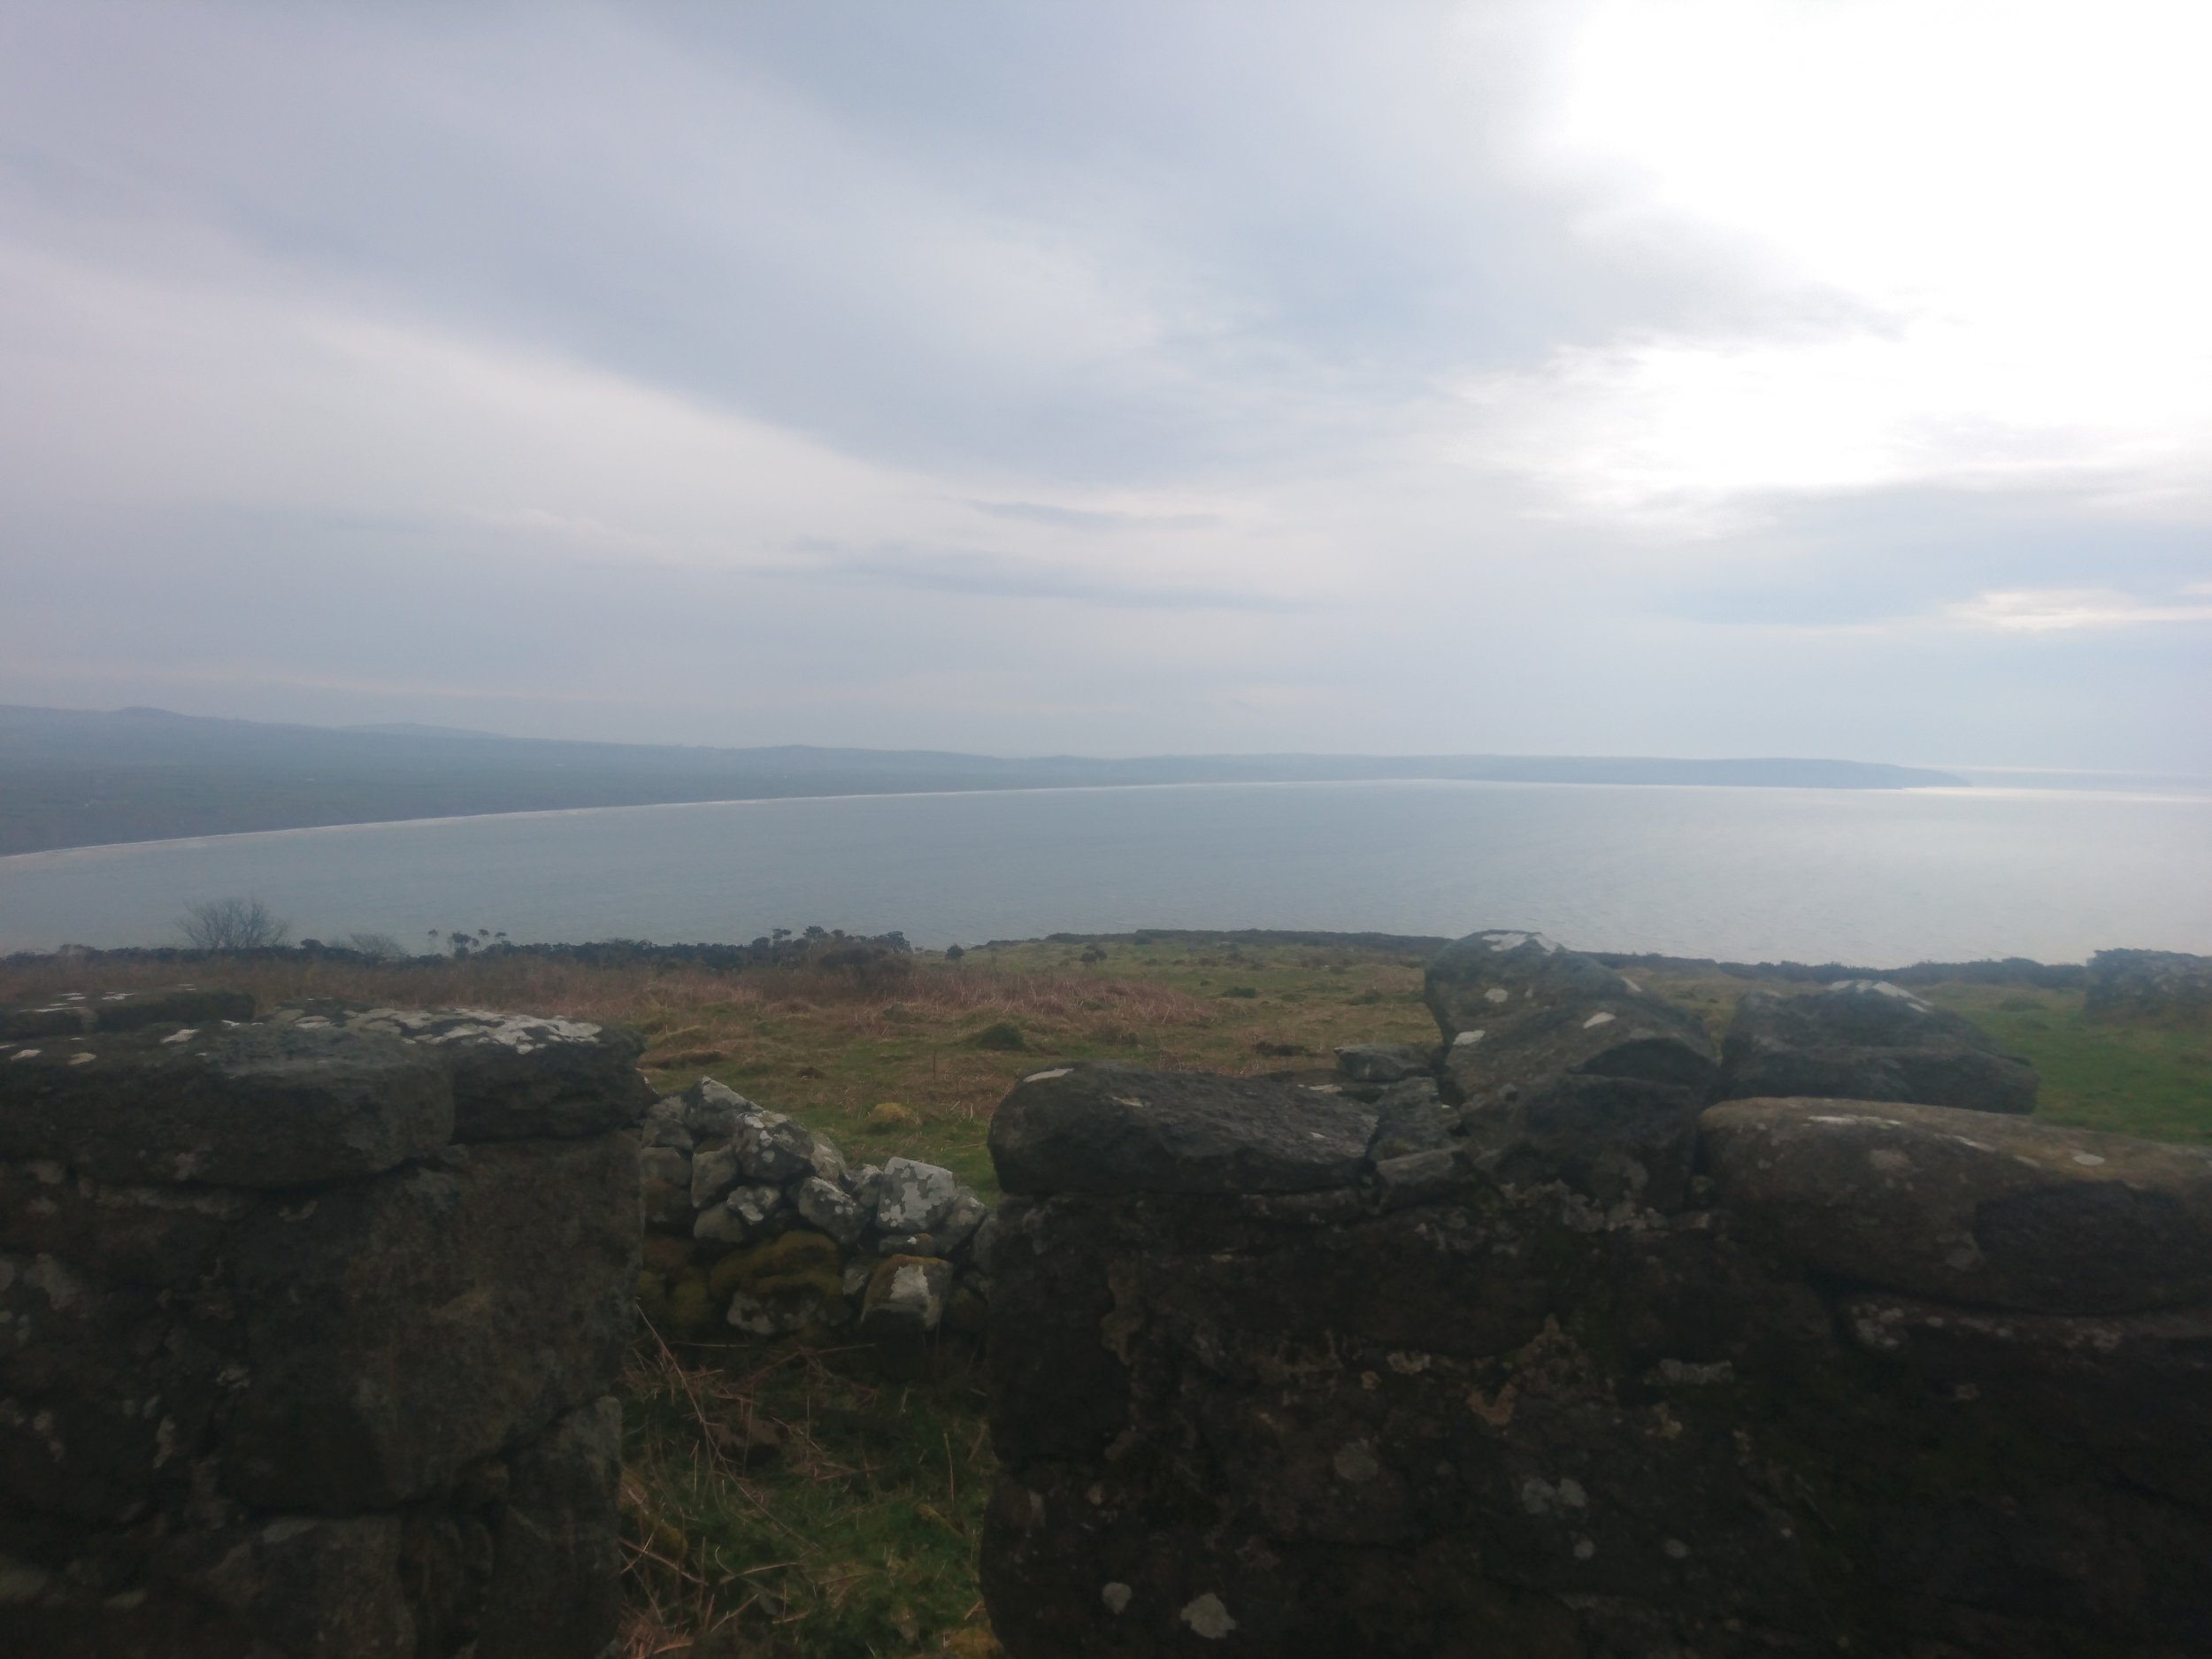 View from a Ruin